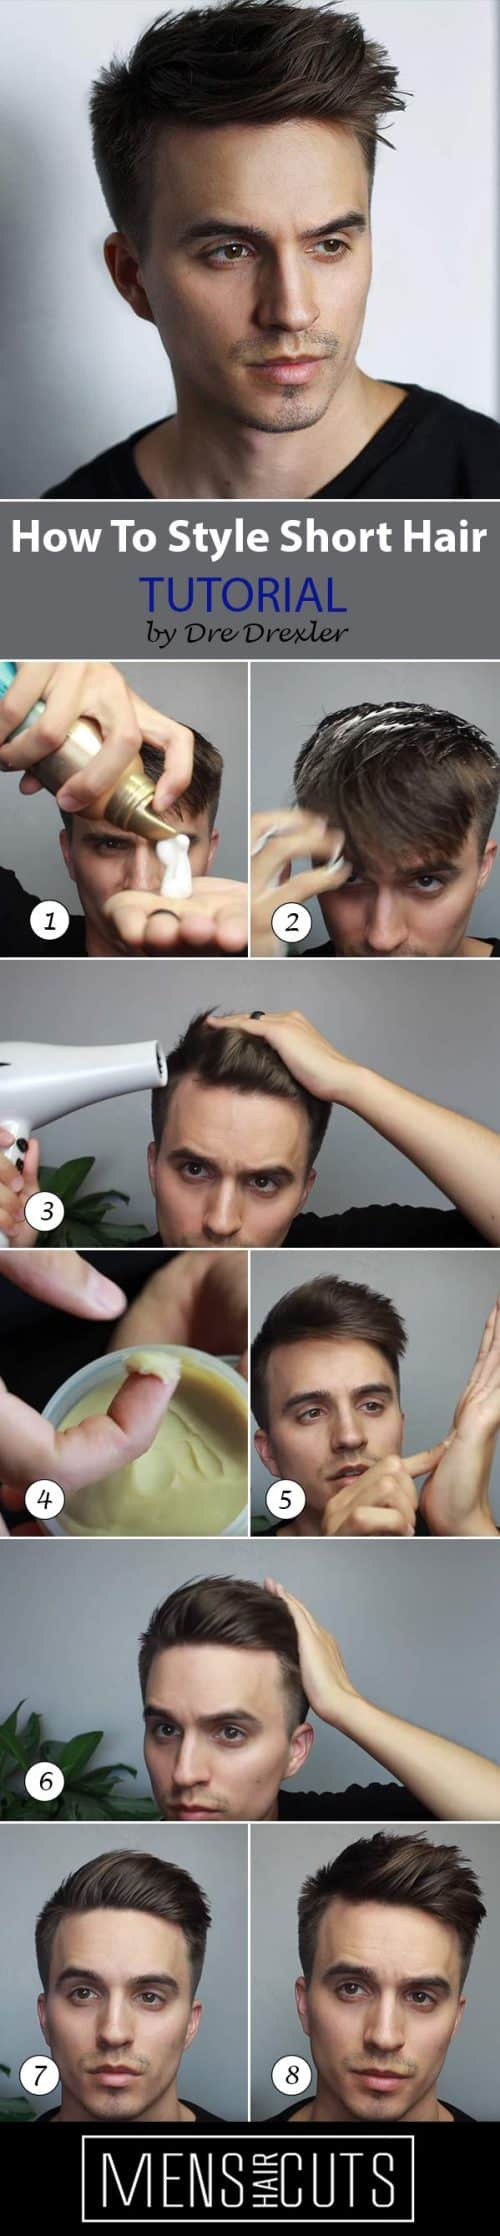 How To Style The Quiff #quiff #tutorial #howtostyleshorthair #shorthair